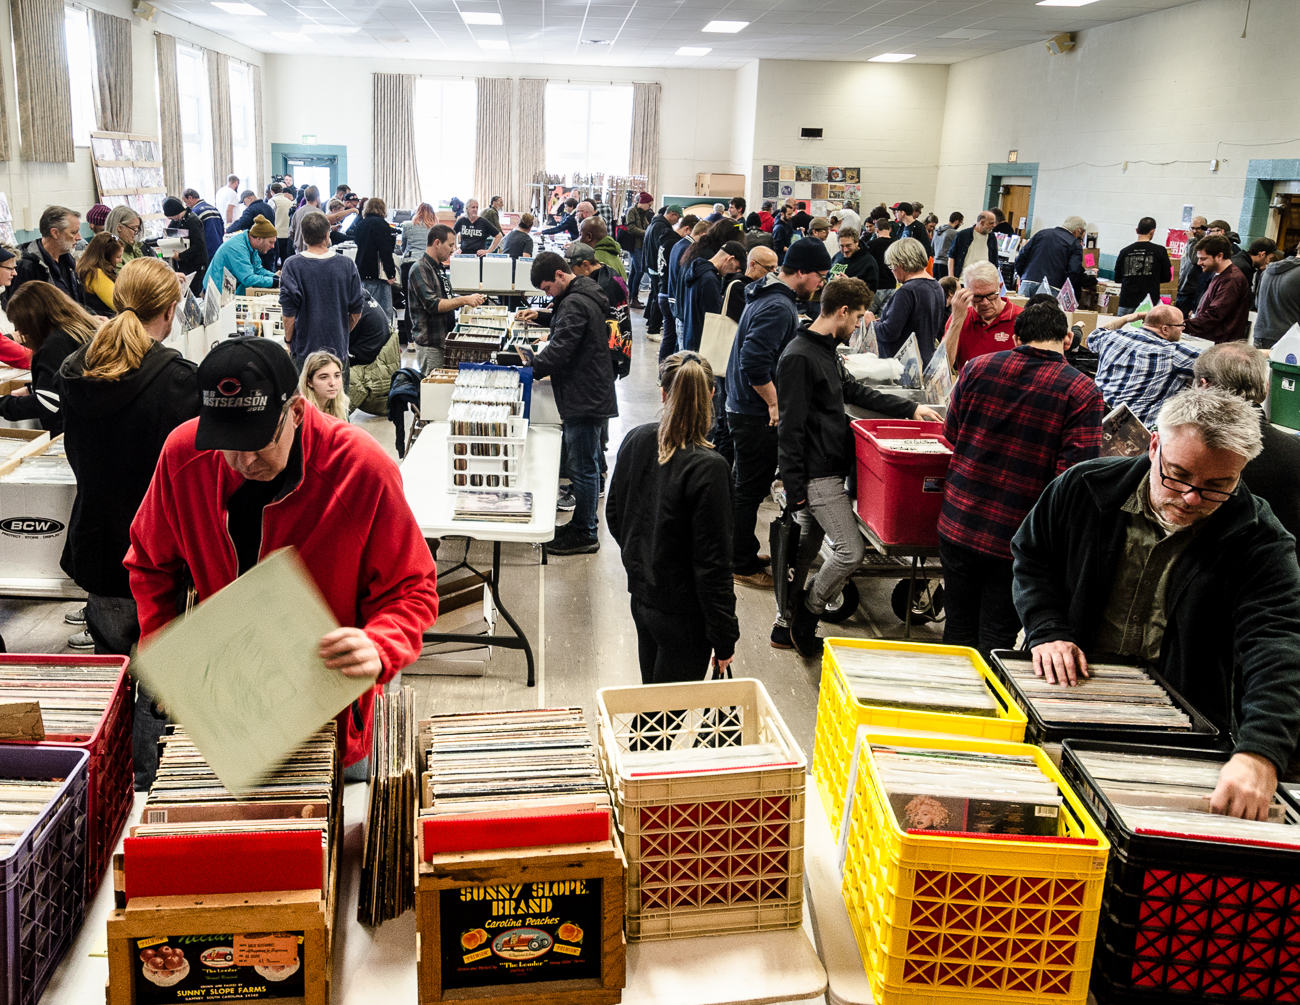 The Northside Record Fair was held on Saturday, November 2. Both local and non-local vendors gathered at North Church in Northside to set up and sell their collections of physical music media: vinyl records, tapes, and CDs. Music lovers had the chance to score rare finds they likely wouldn't find anywhere else offline. In addition to music, music-related merchandise was also for sale. The fair was sponsored by Torn Light, Shake It Records, and Discogs. / Image: Kellie Coleman // Published: 11.3.19